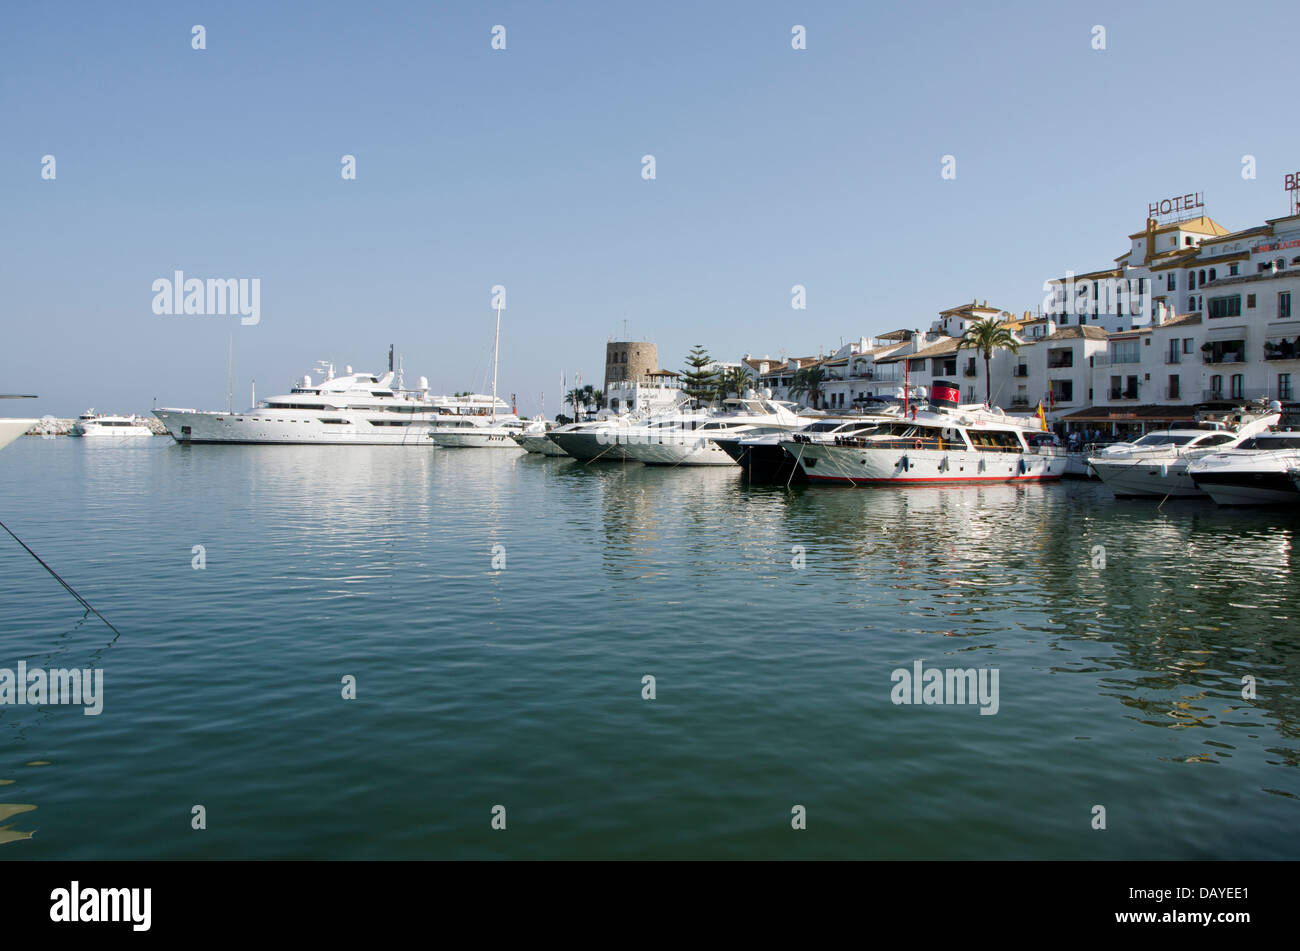 The marina of Puerto banus in Marbella with old watch tower. Costa del Sol, Spain. - Stock Image